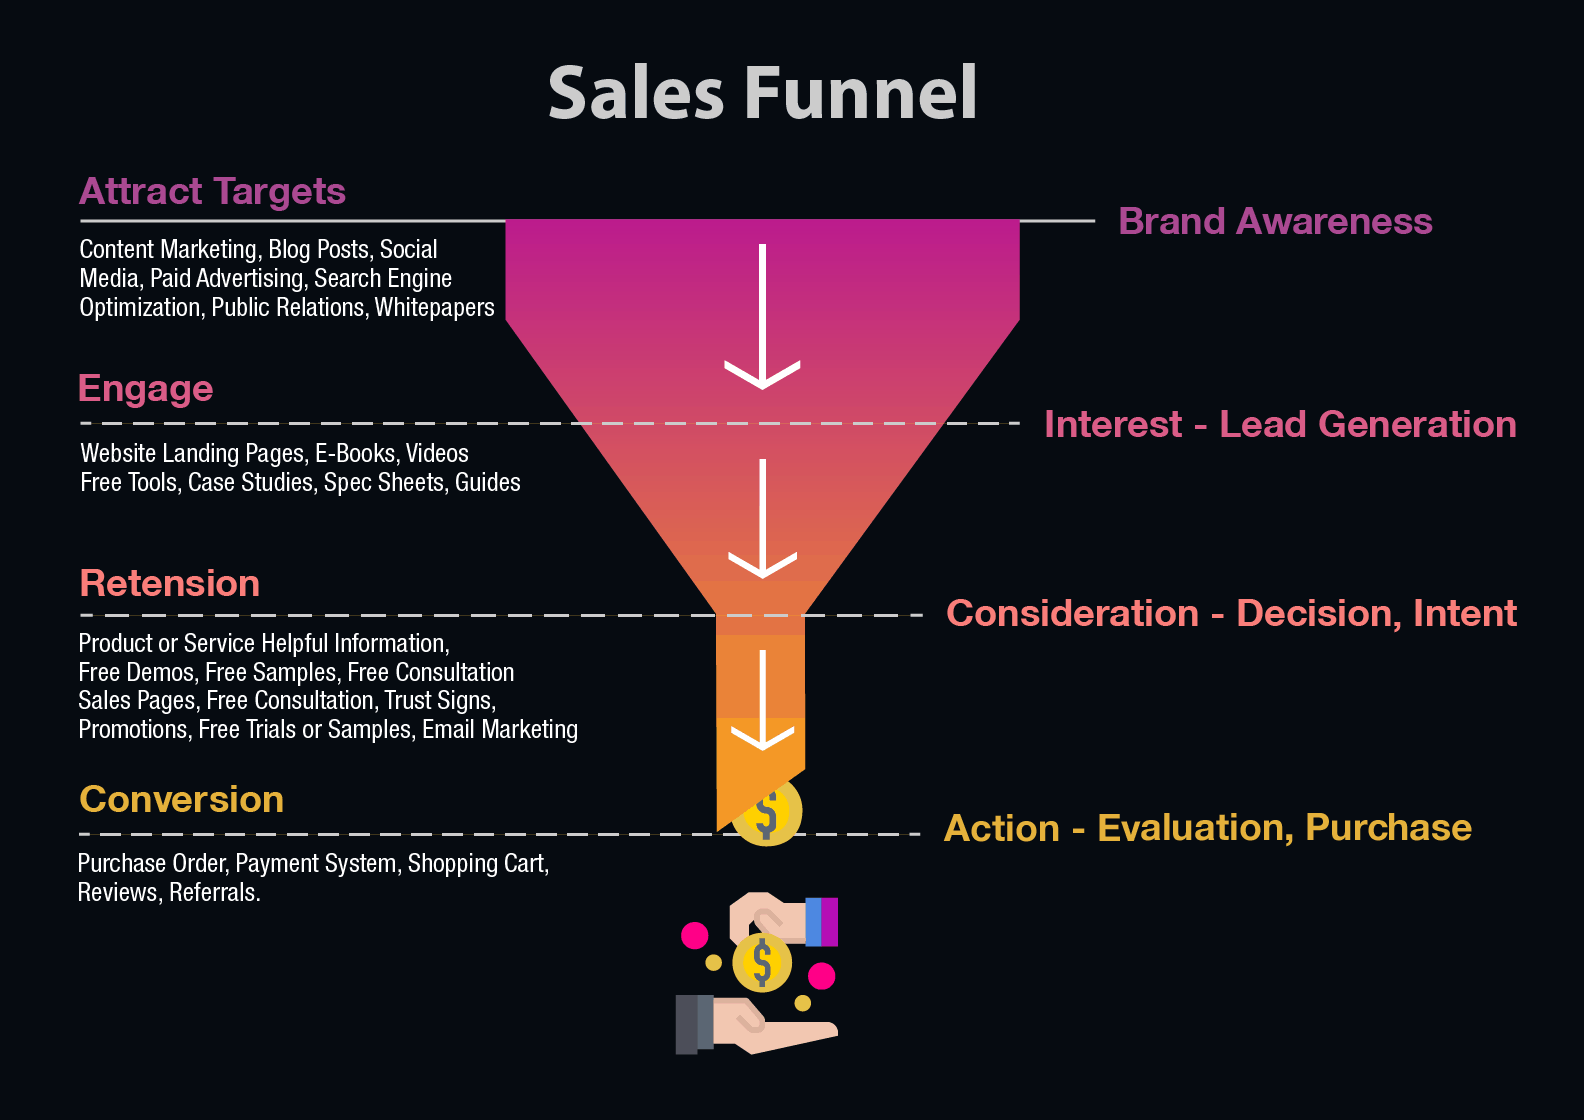 Sales Funnel 4 Stages Cool Chart Envision Dennis Romano Sales Funnels Marketing Presentation Web Design Agency